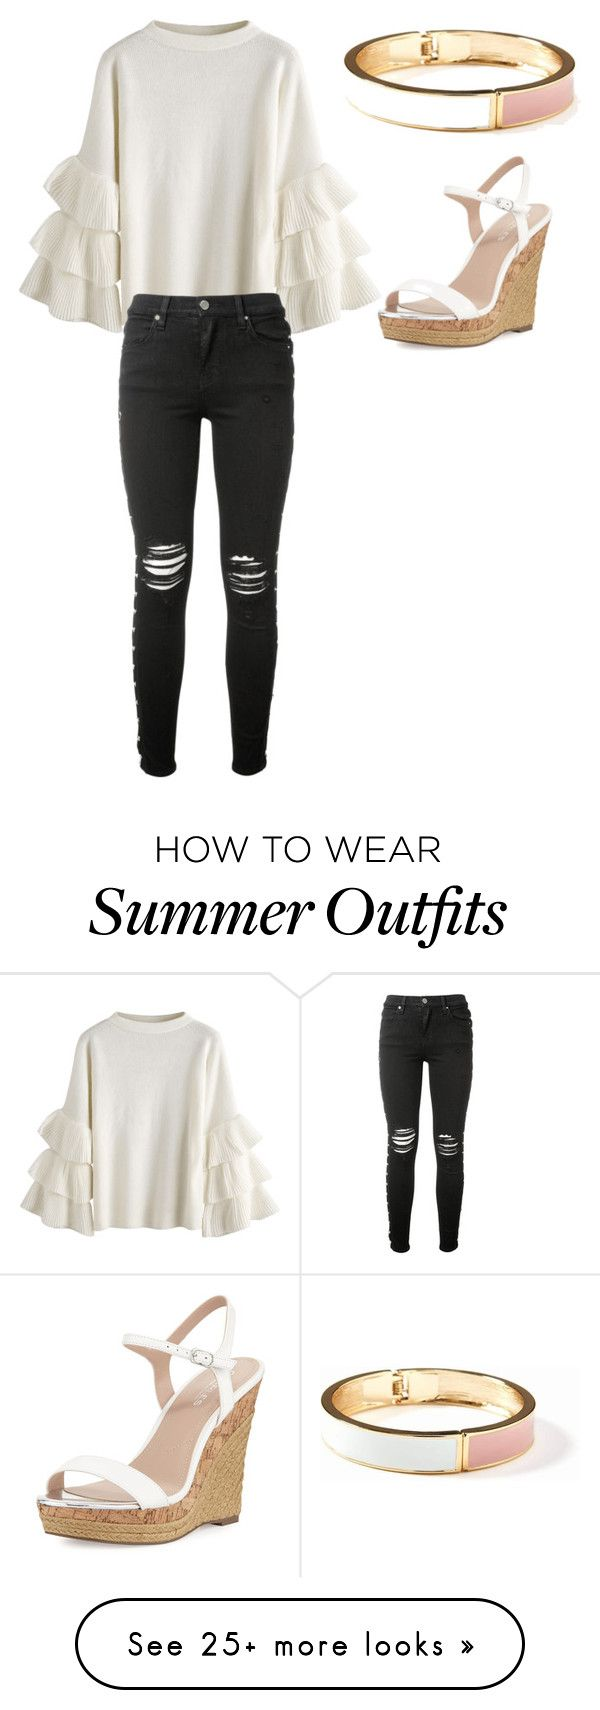 """""""The fancy summer outfit"""" by erhecht on Polyvore featuring Old Navy, Charles by Charles David and AMIRI"""